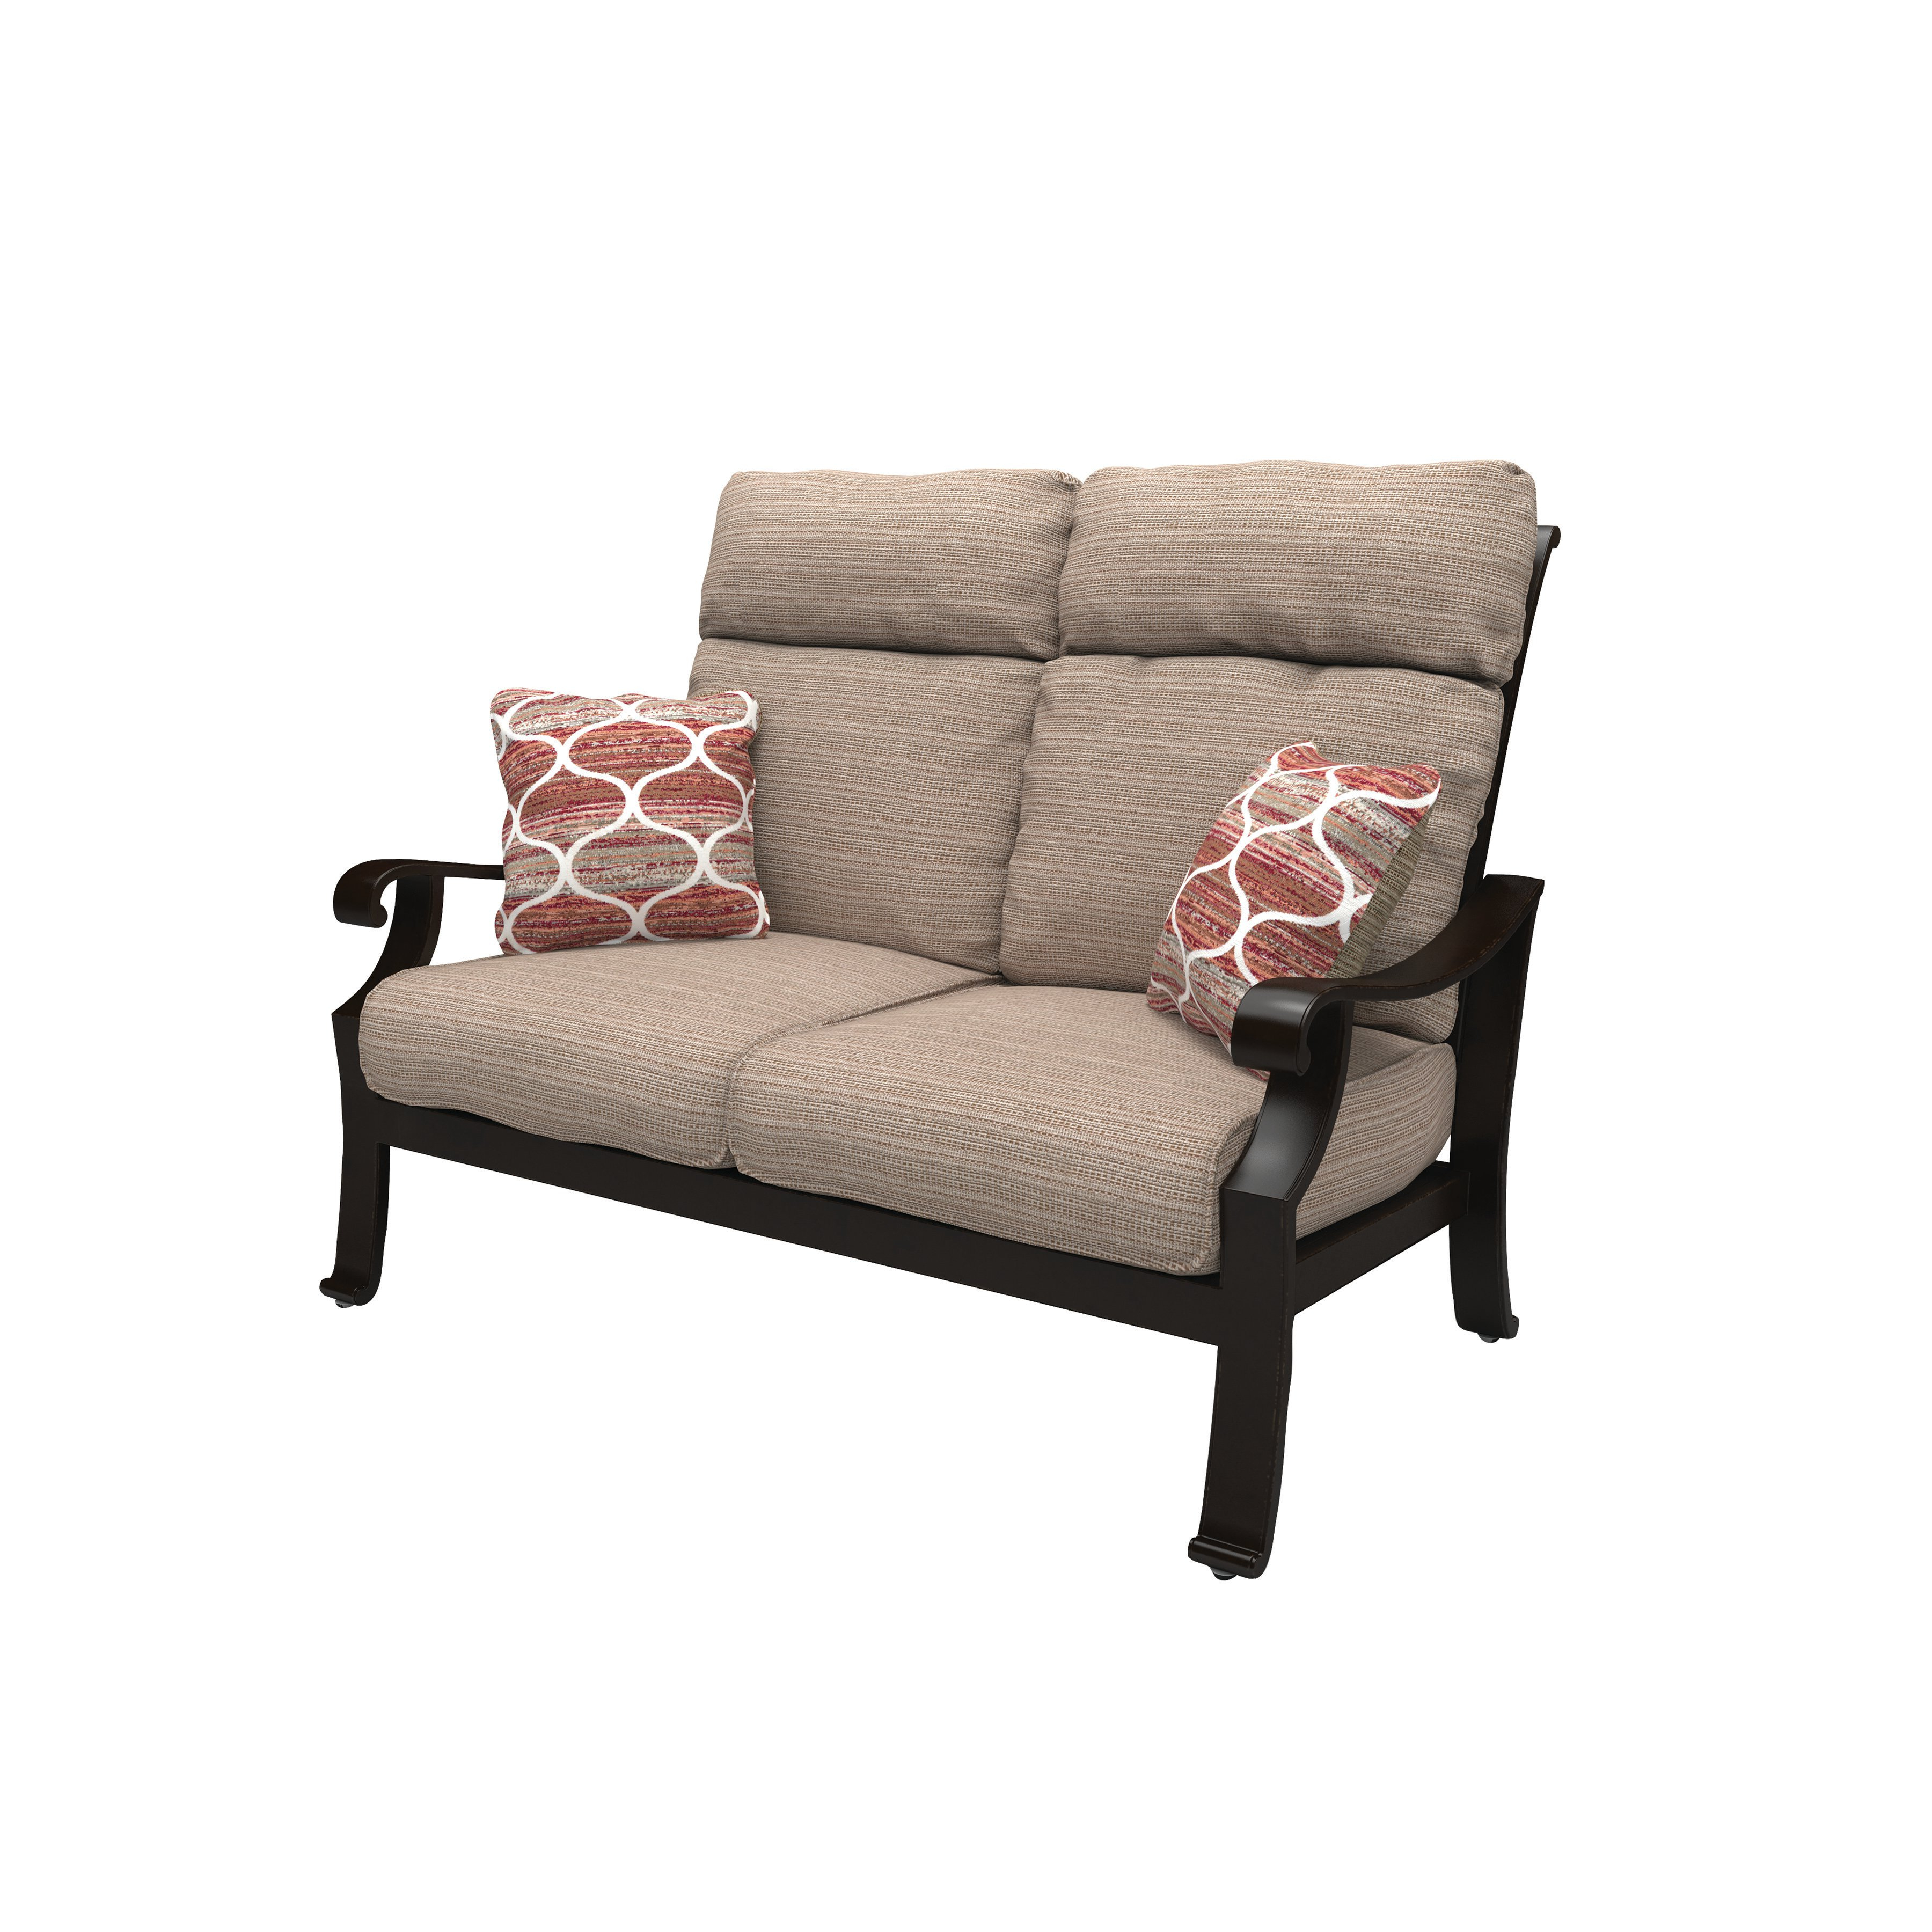 Hamer Loveseat With Cushions With Regard To 2019 Northridge Loveseats With Cushions (Gallery 13 of 20)